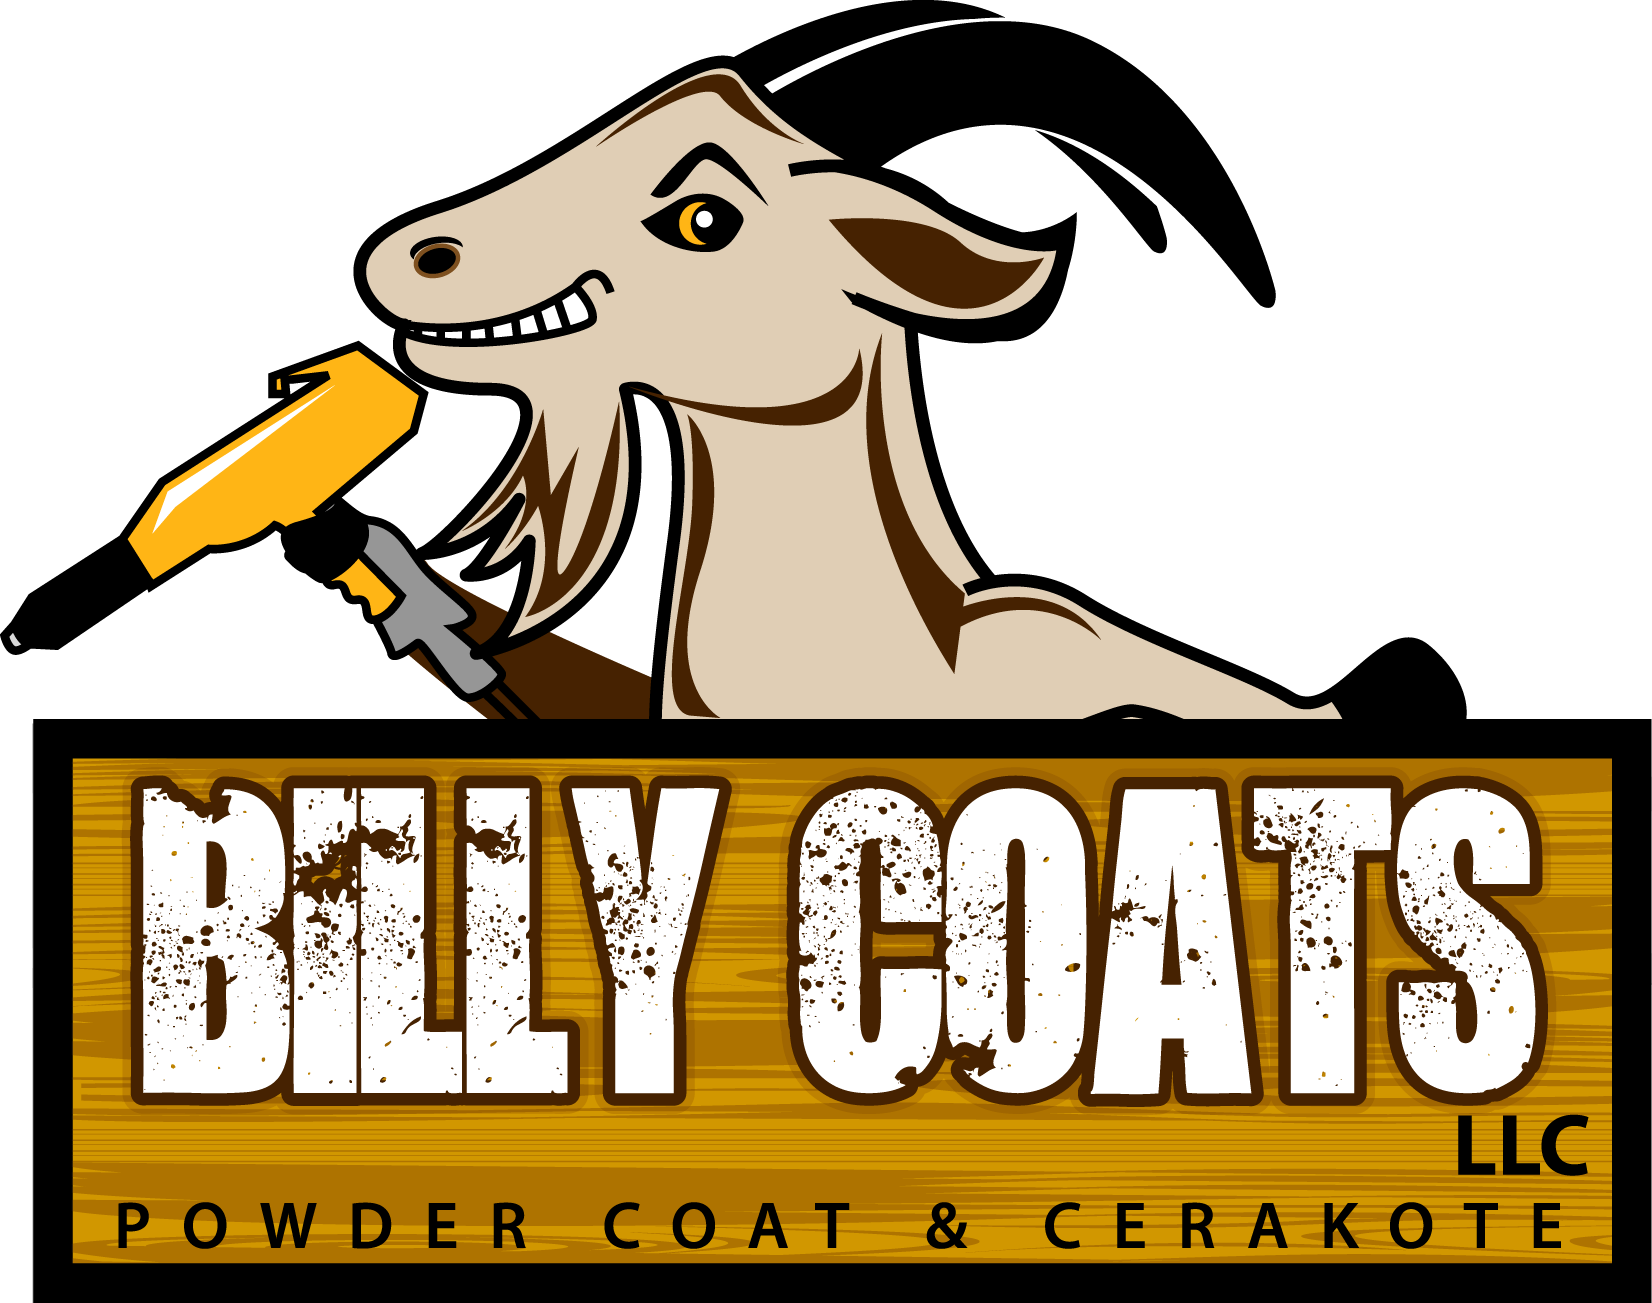 Dring clip powder coated. Billy coats llc coat